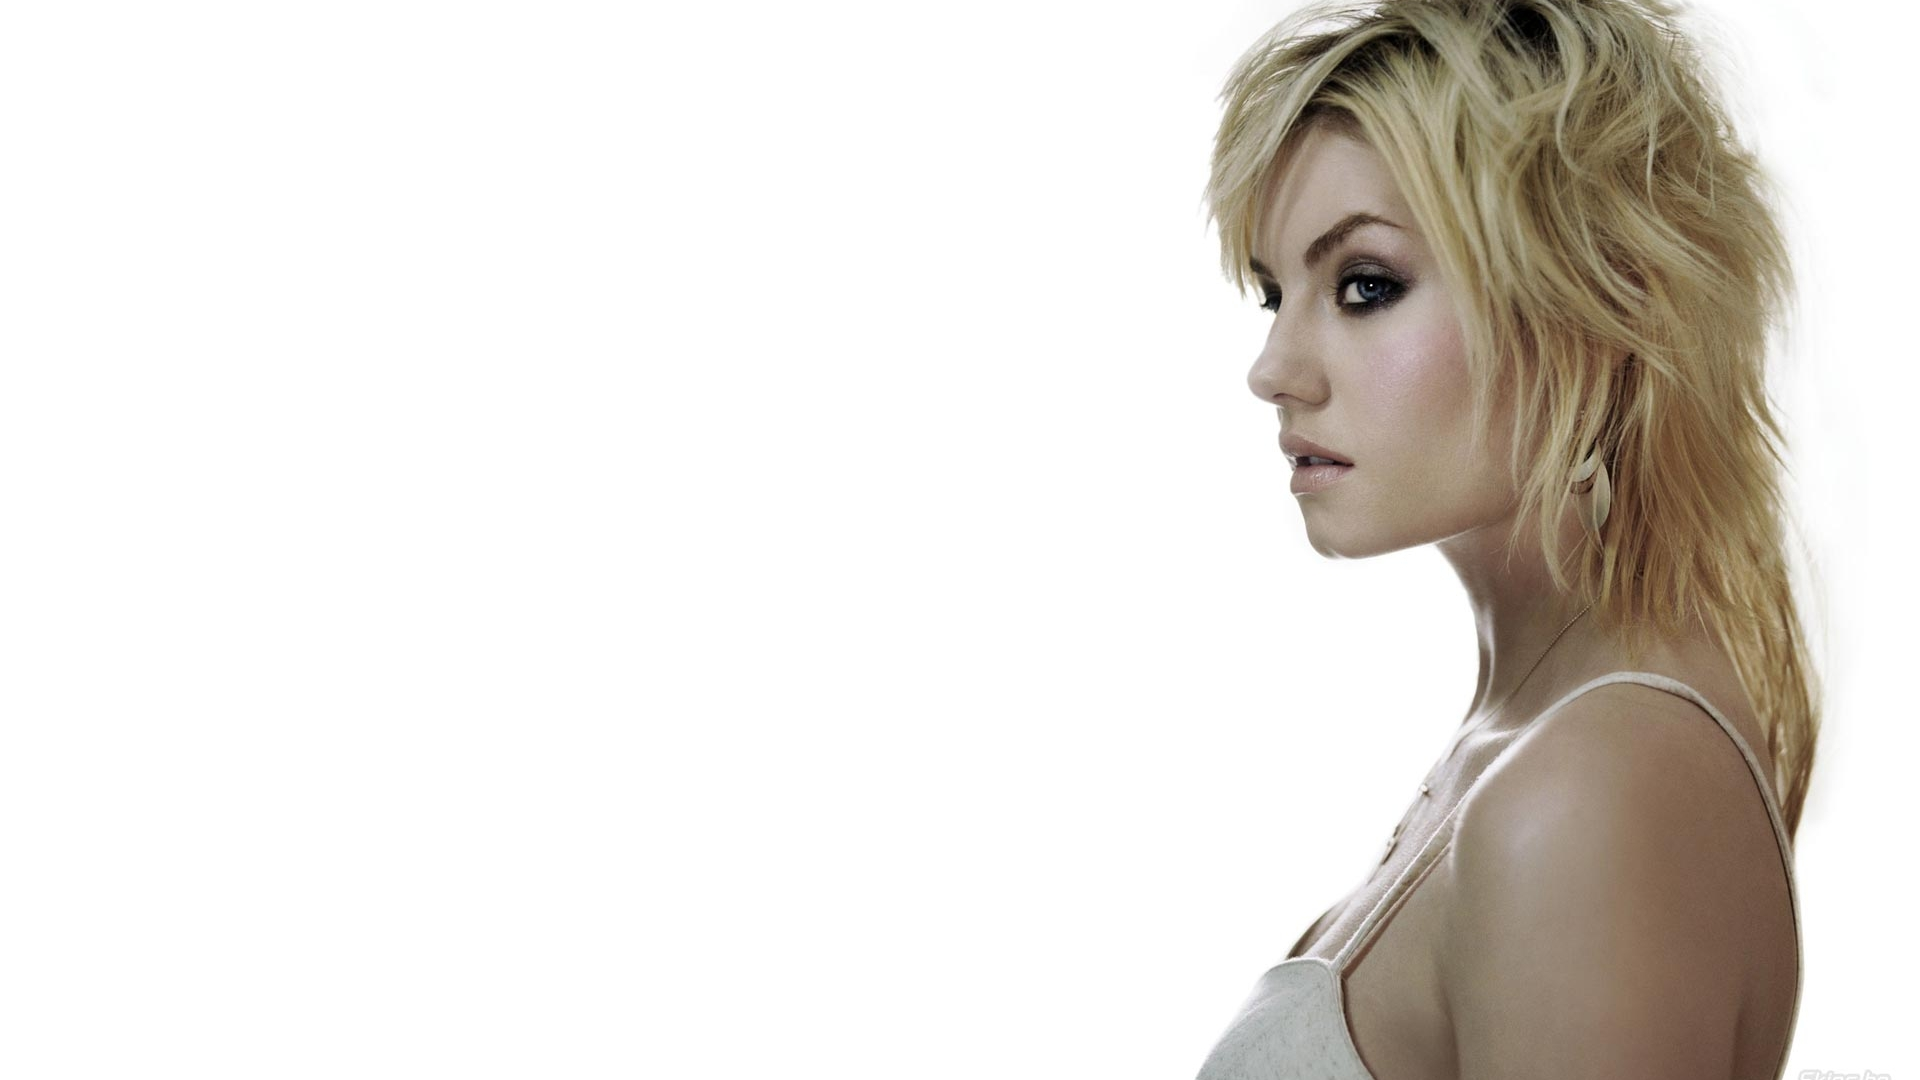 Elisha cuthbert wallpaper hd wallpapers - High resolution wallpaper celebrity ...